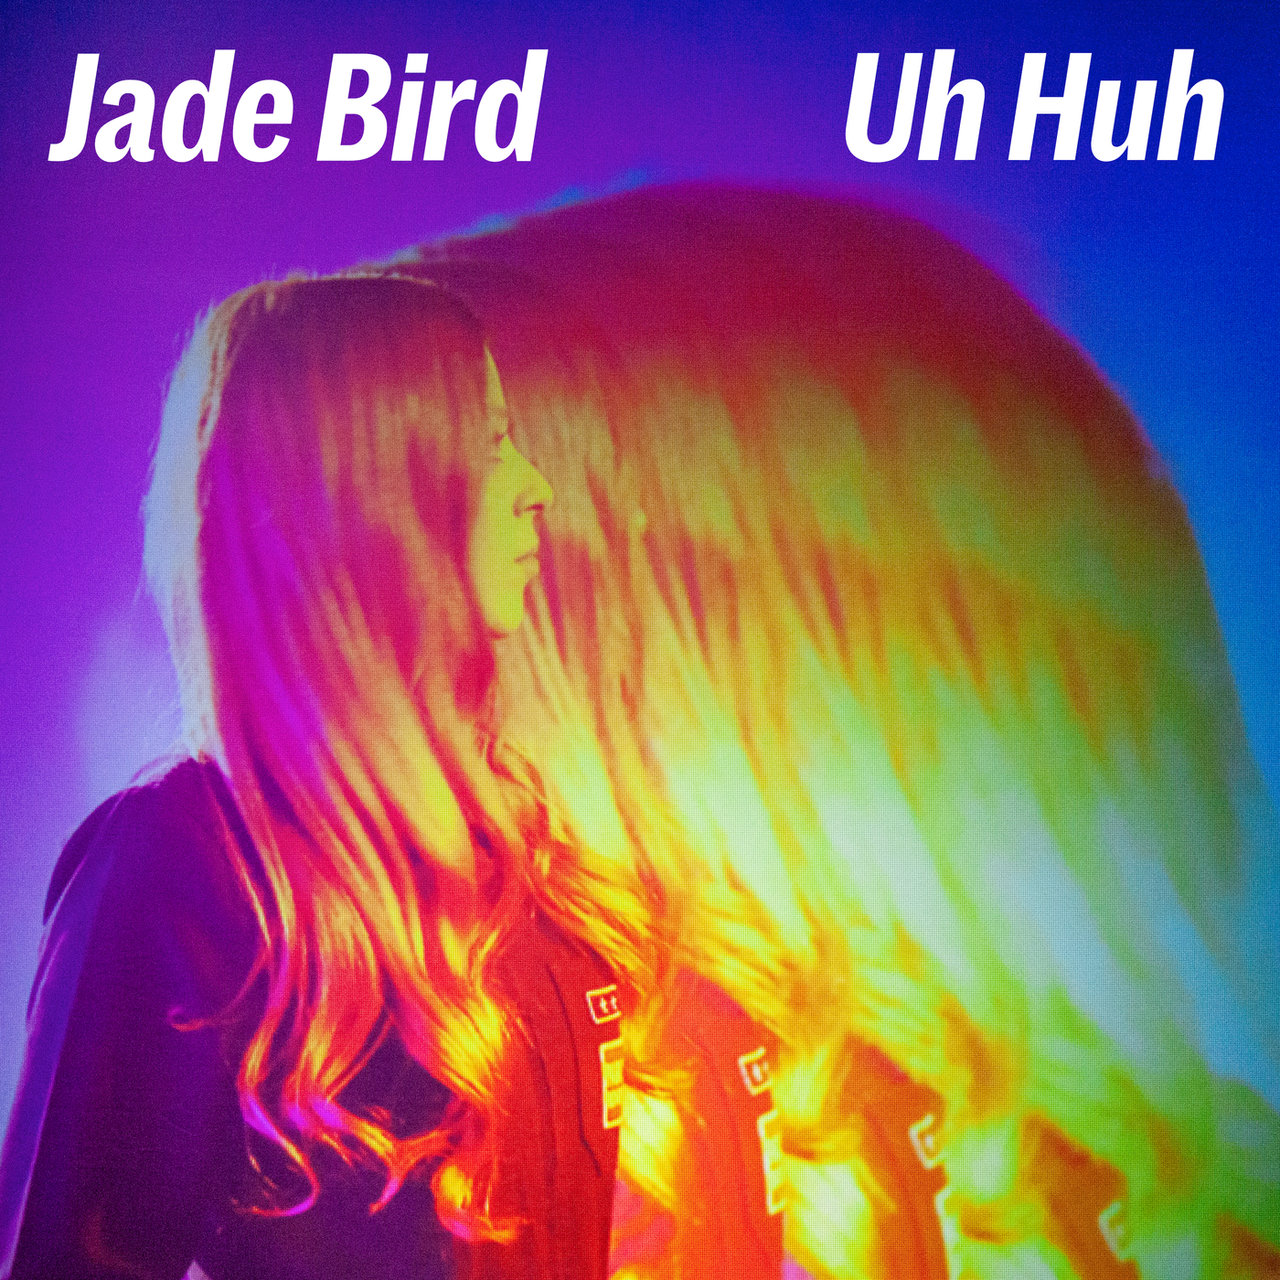 Download jade bird uh huh single 2018edm rg torrent description ccuart Image collections